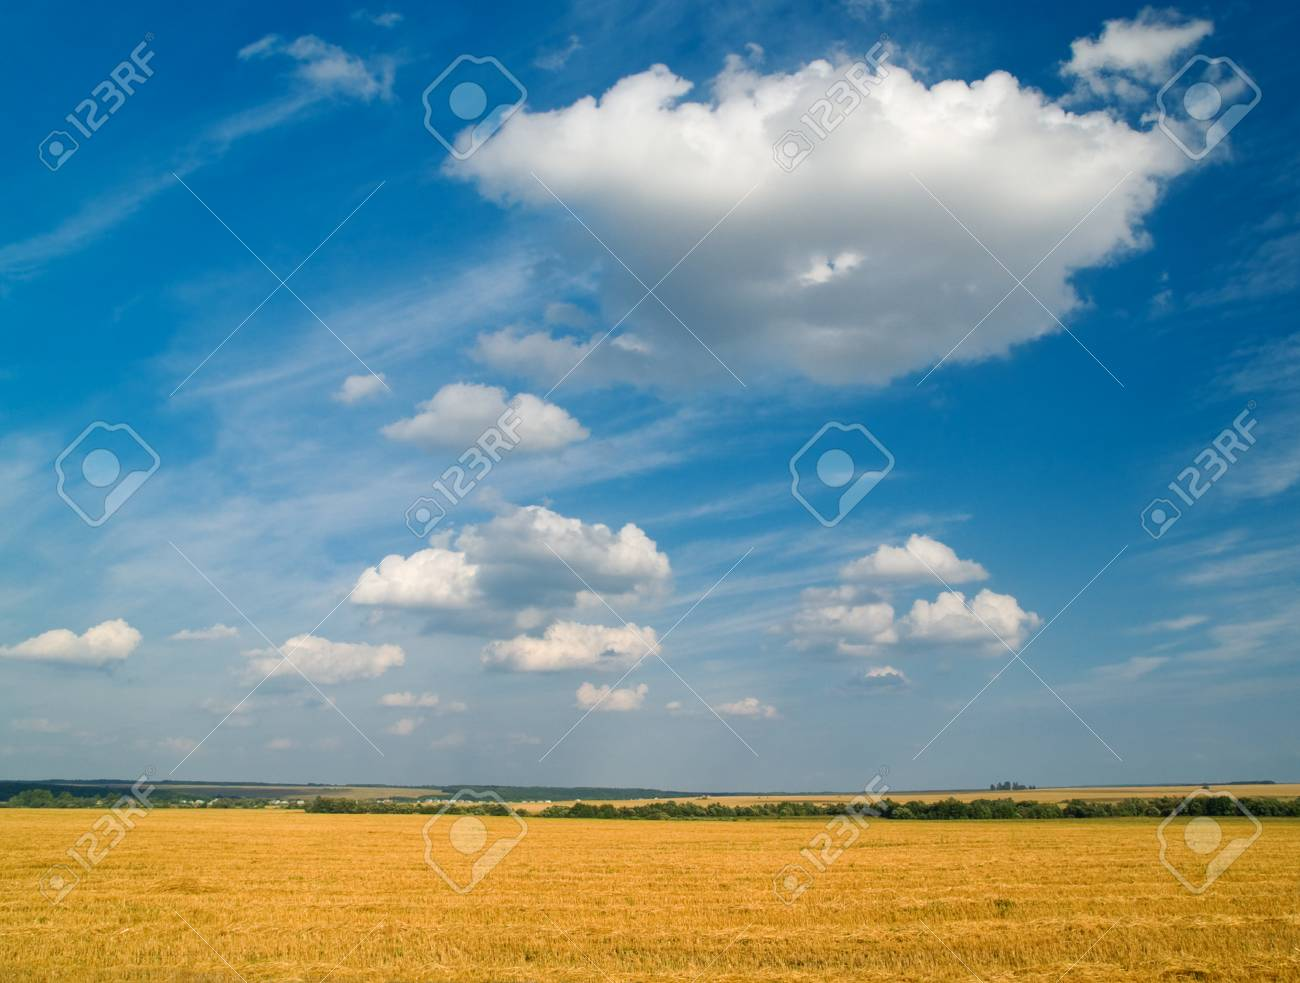 bright rural landscape with yellow fields and blue sky Stock Photo - 1584507